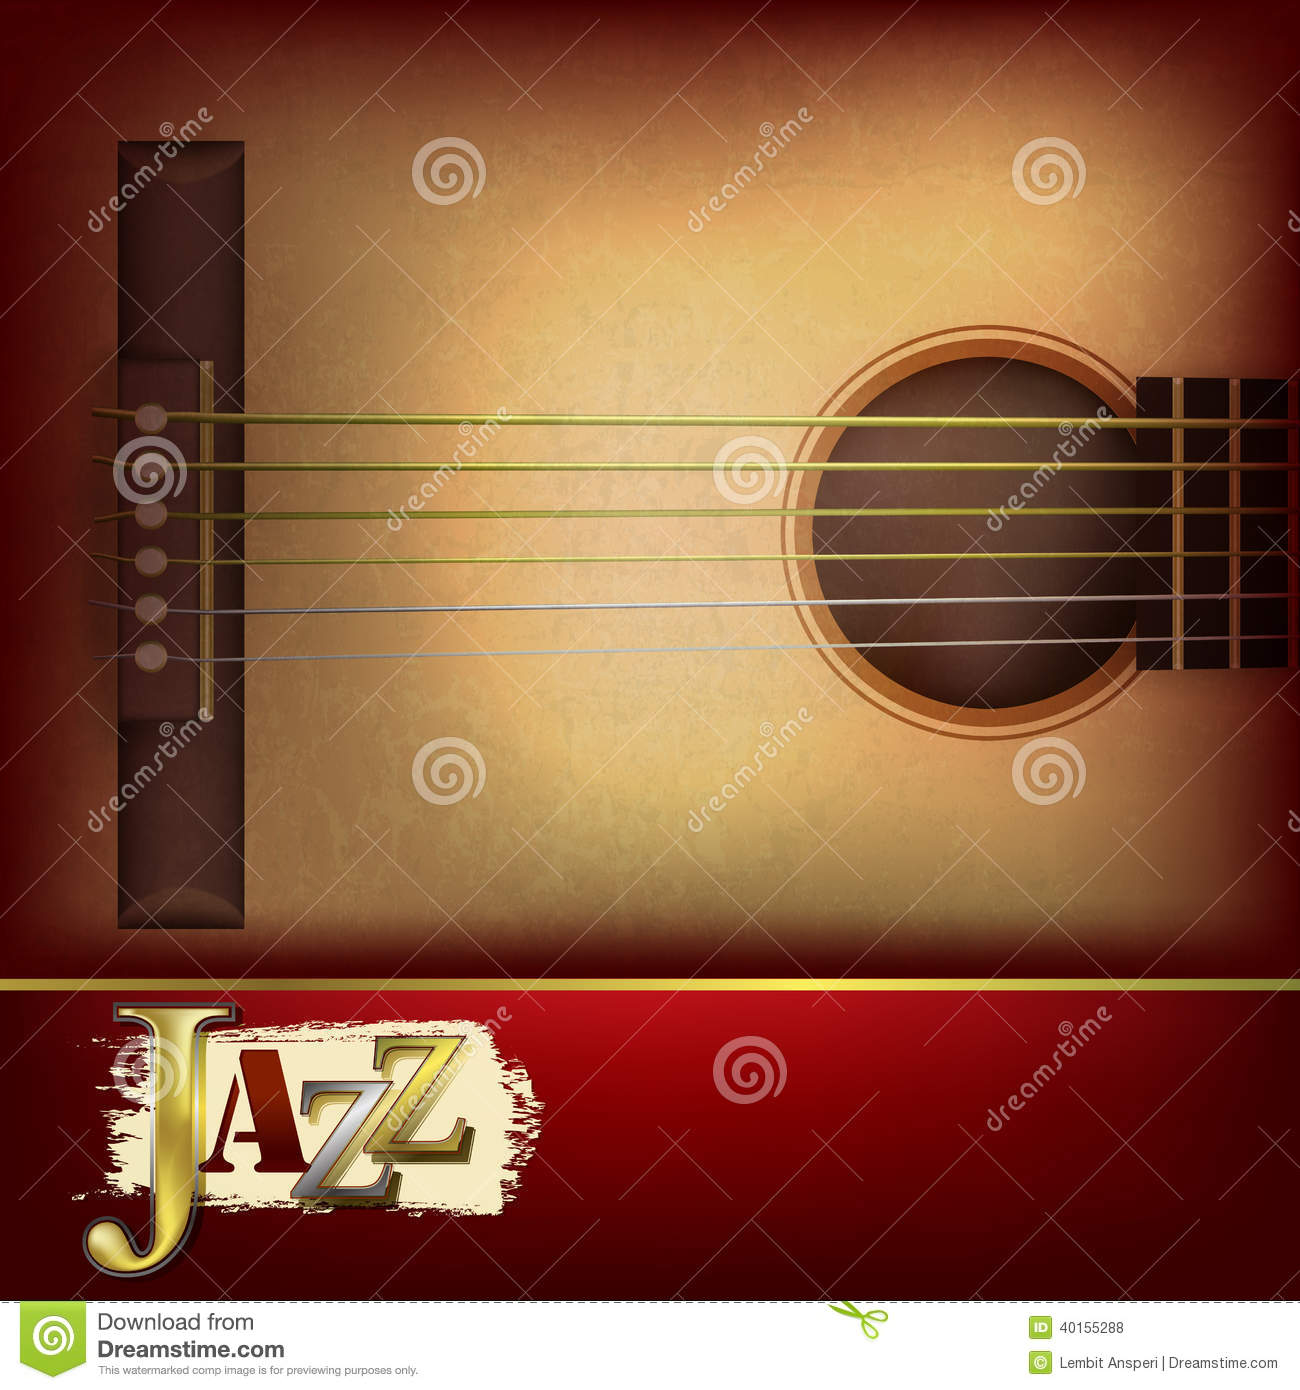 music time guitar abstract - photo #11